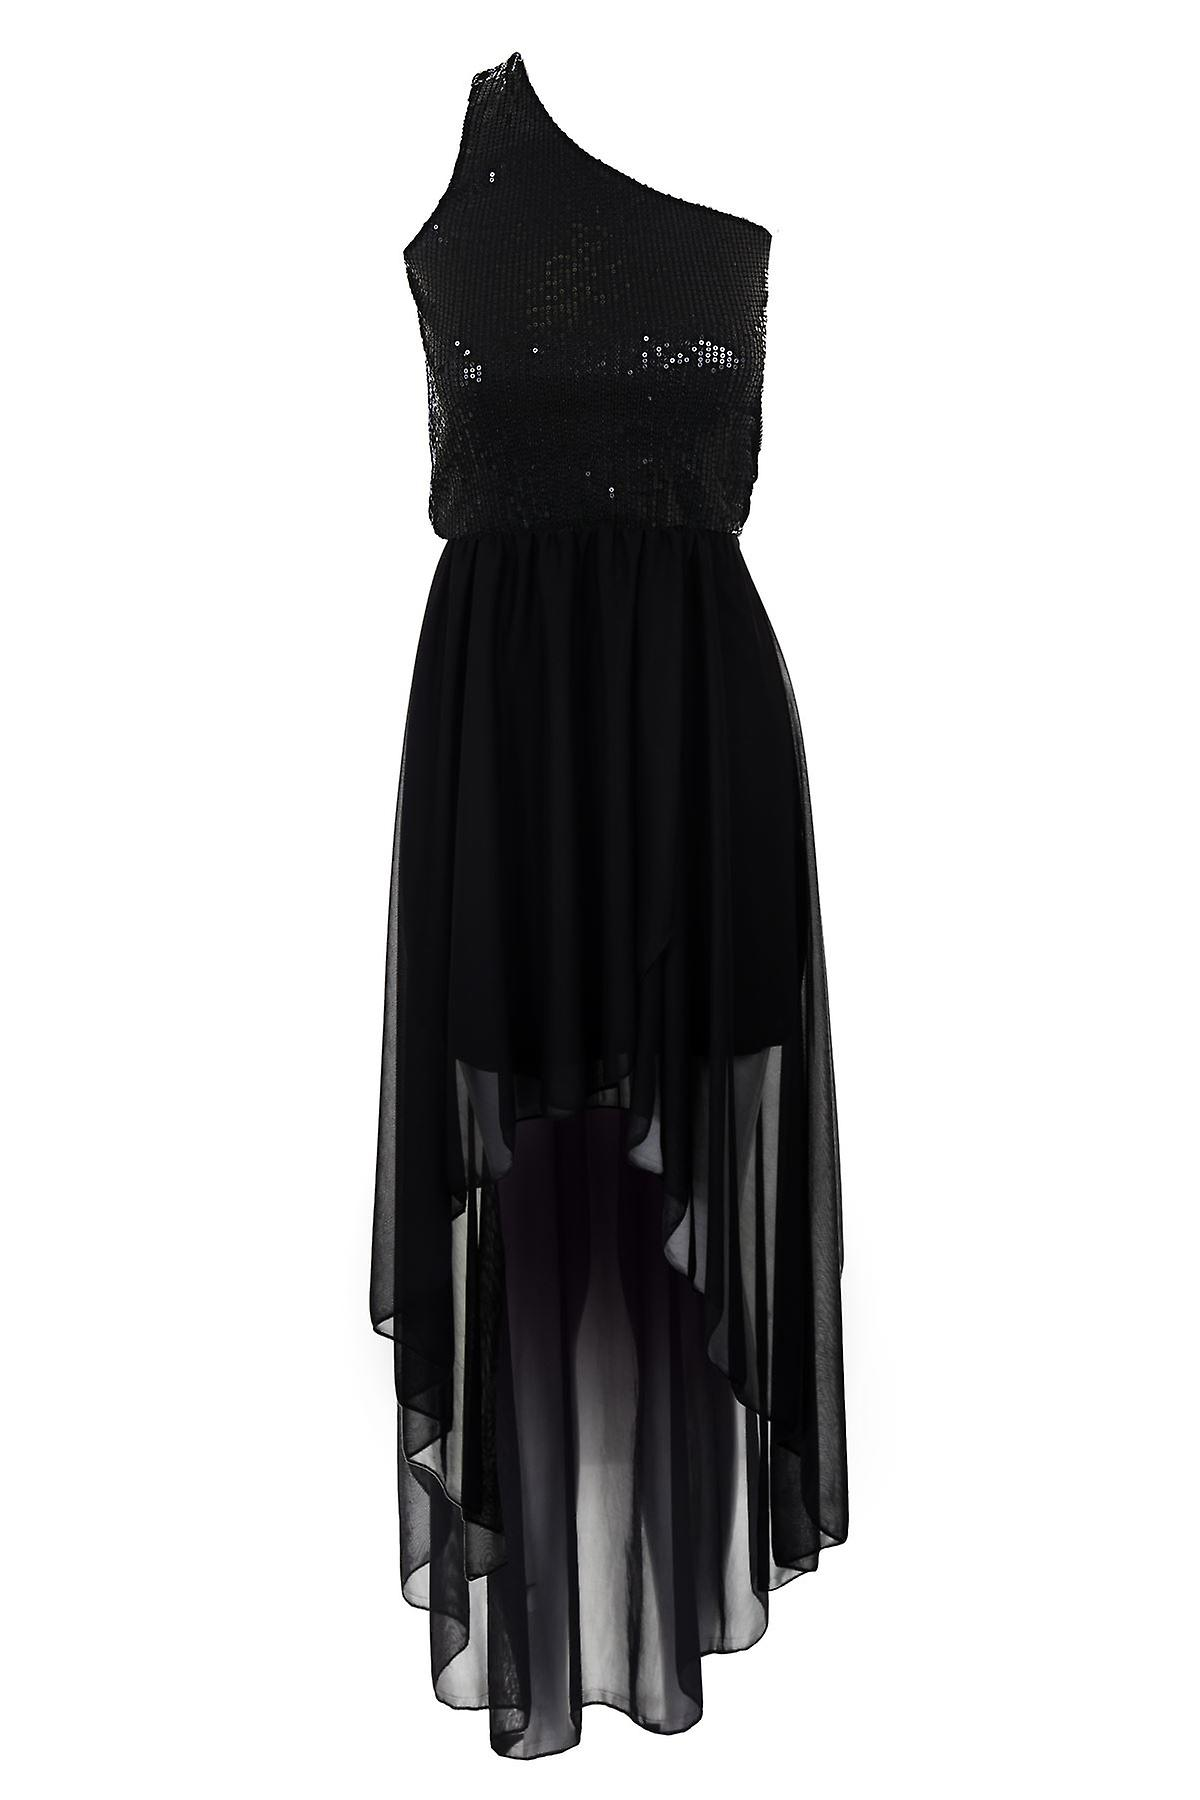 Ladies Black Sequin One Shoulder FishTail High Low Chiffon Women's Dress